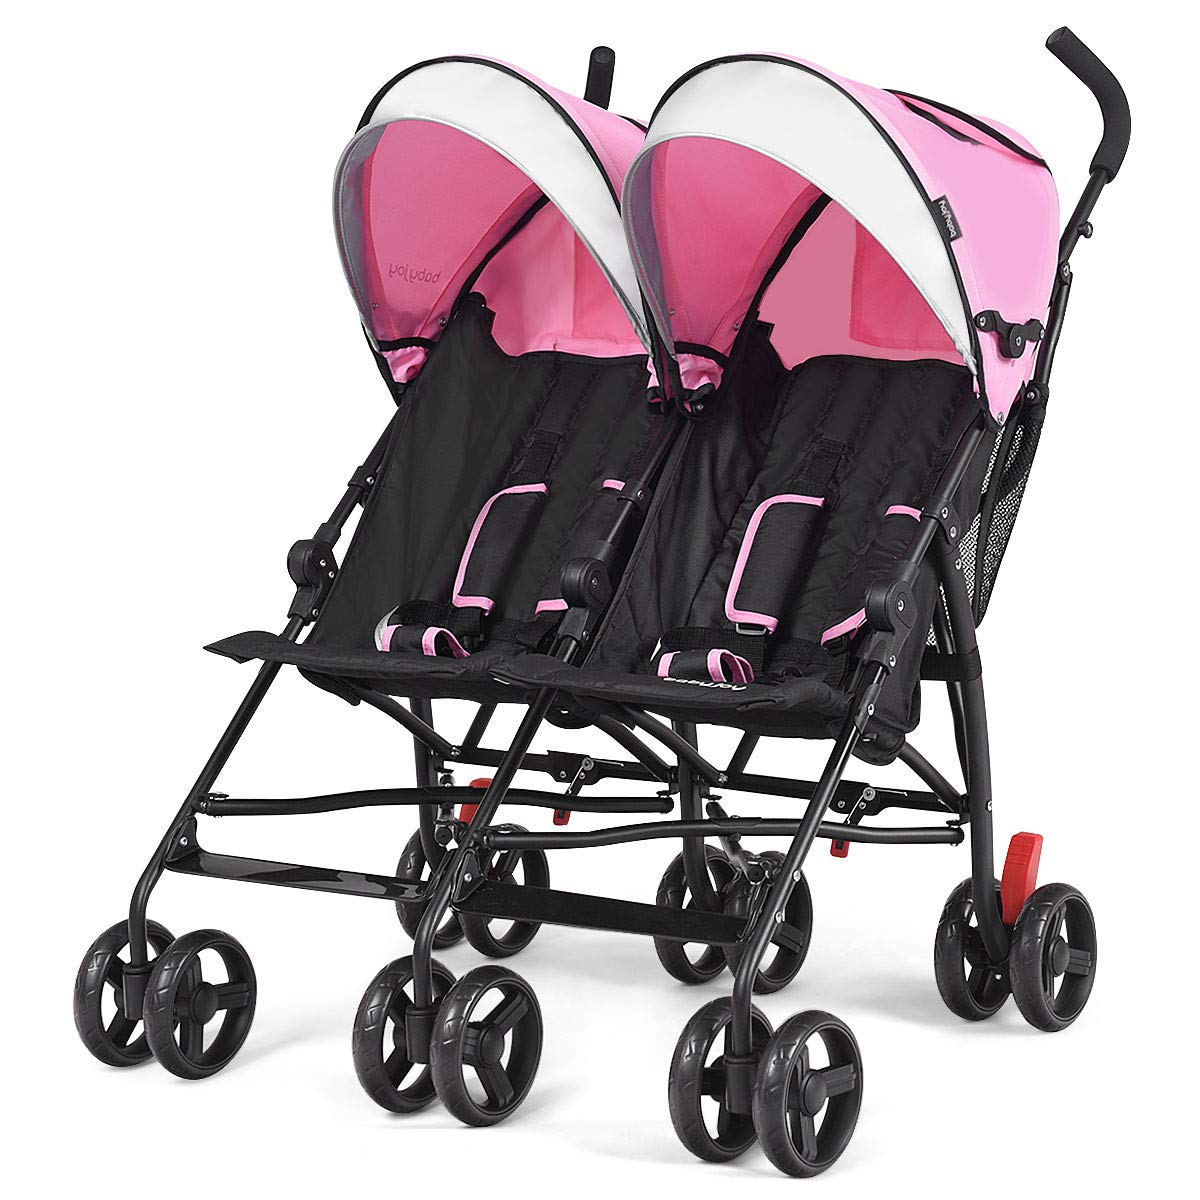 ARLIME Double Lightweight Infant Stroller, Side by Side Umbrella Stroller W/5-Point Harness, Large Storage Bag & Convenient Cup Holder, Adjustable Sun Canopy for Baby & Toddlers (Pink)